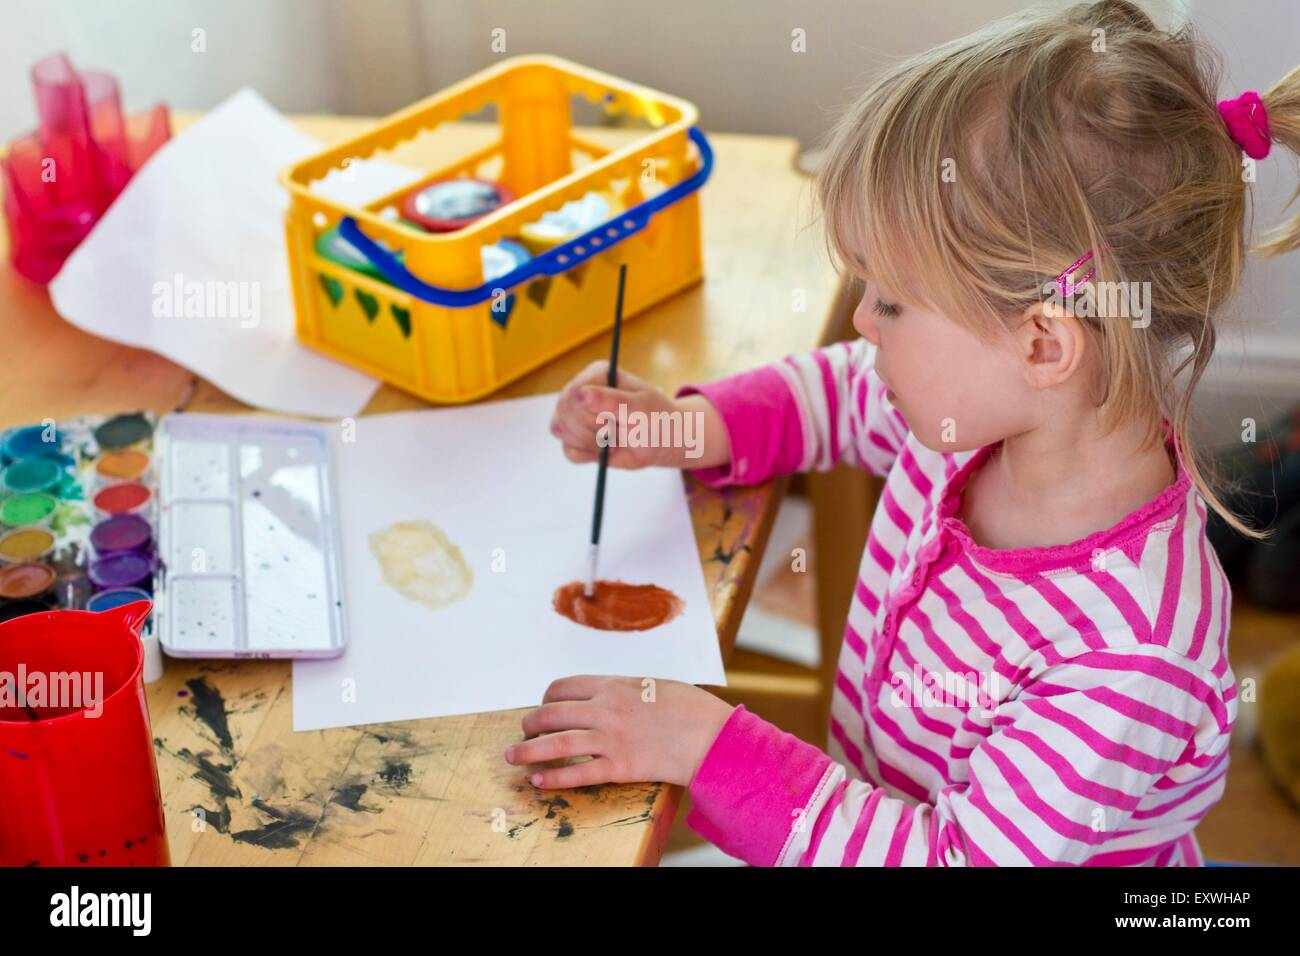 Girl painting a picture - Stock Image